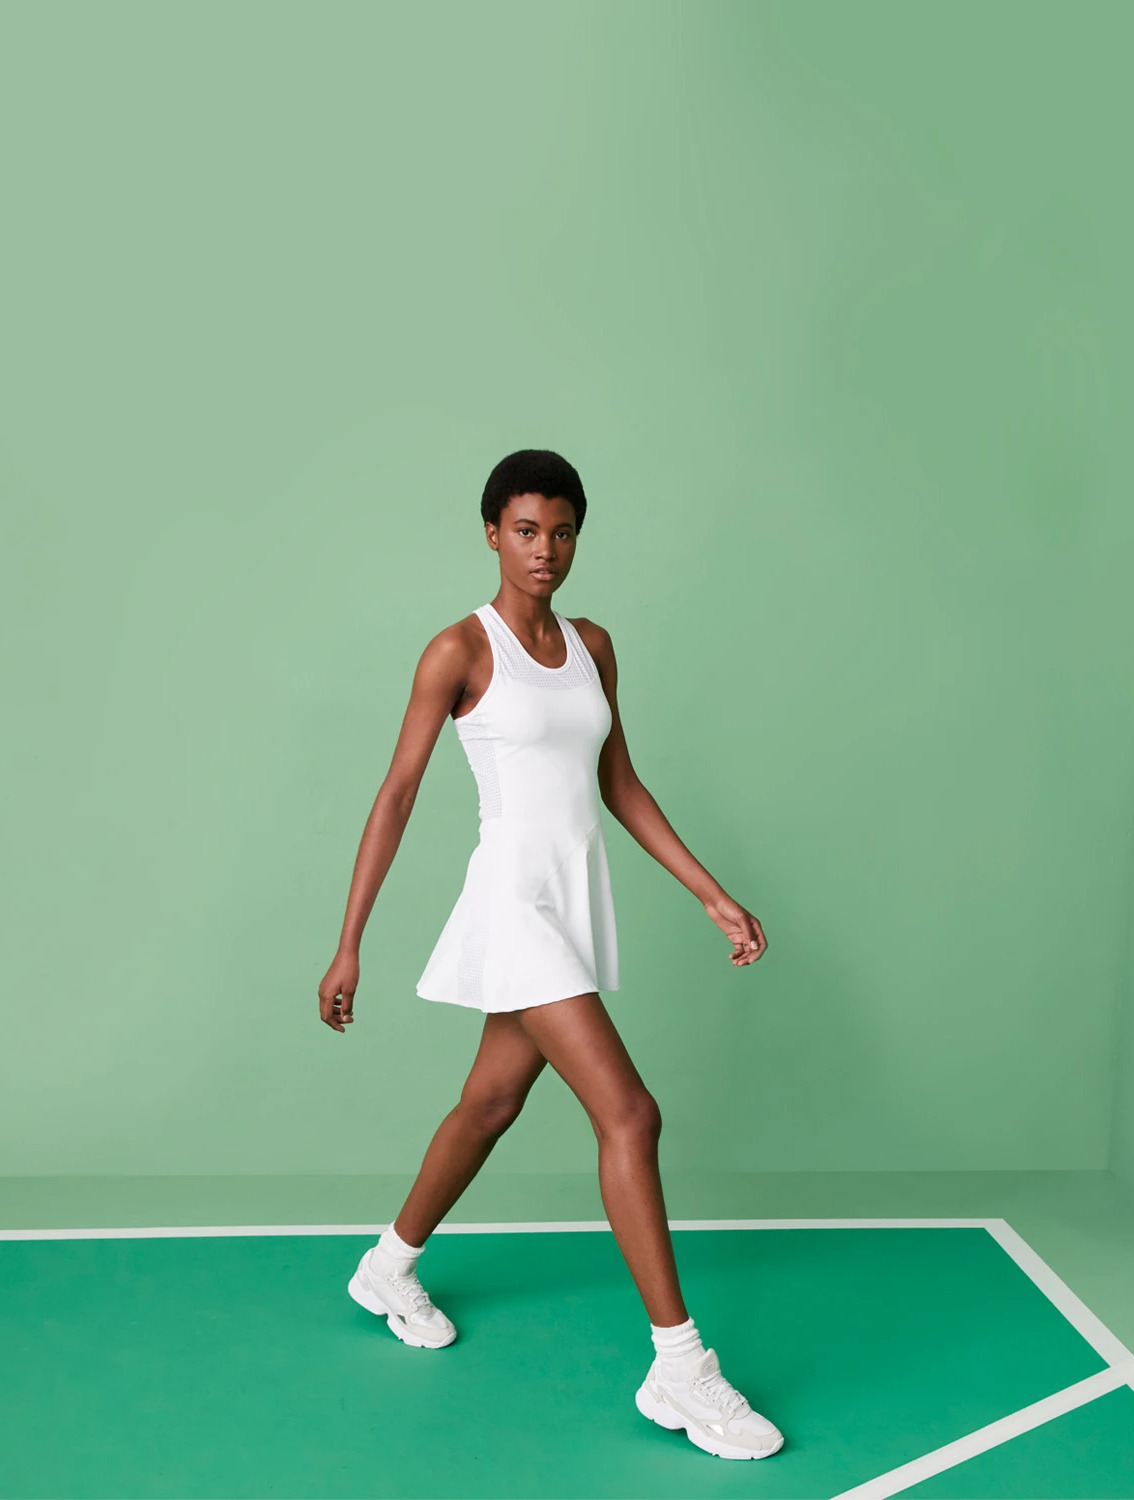 Shop the Tennis Collection Featuring the Serena Dress